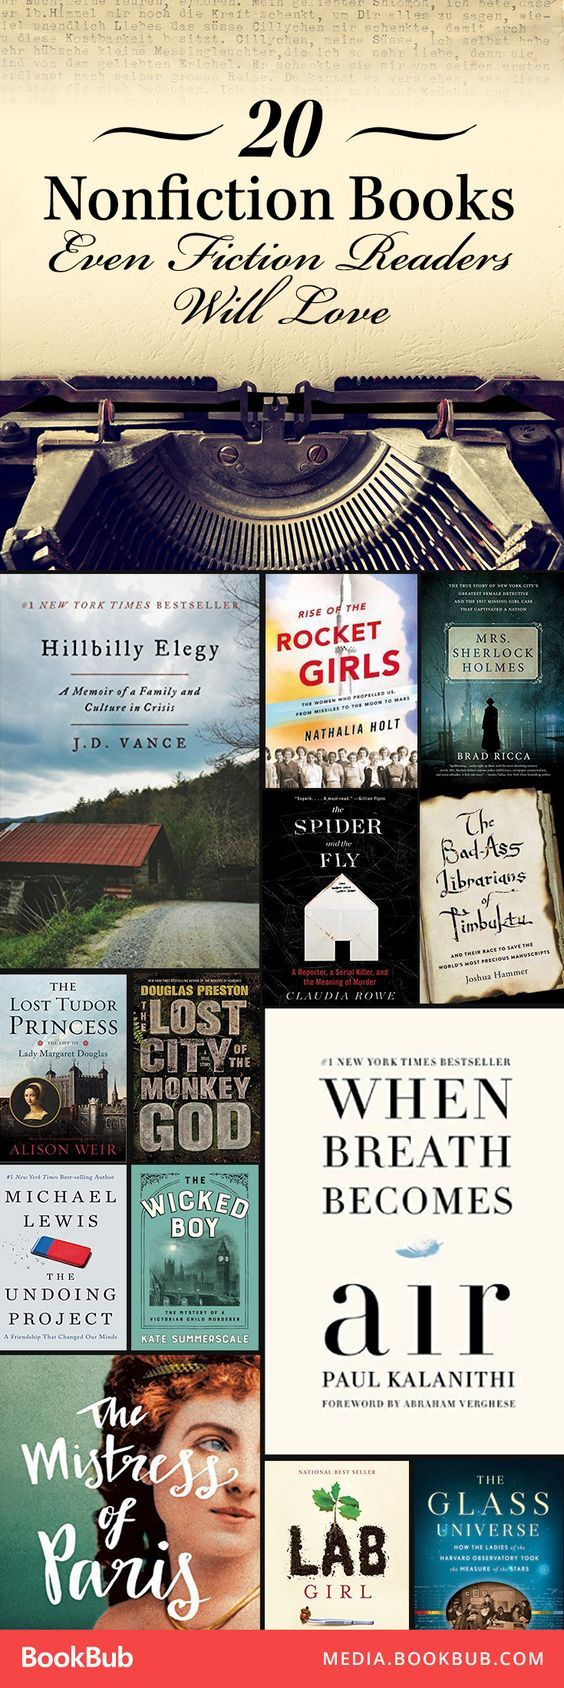 These Nonfiction Books Feature True Stories, Including Historical Books  About The Tudors And Modern Memoirs